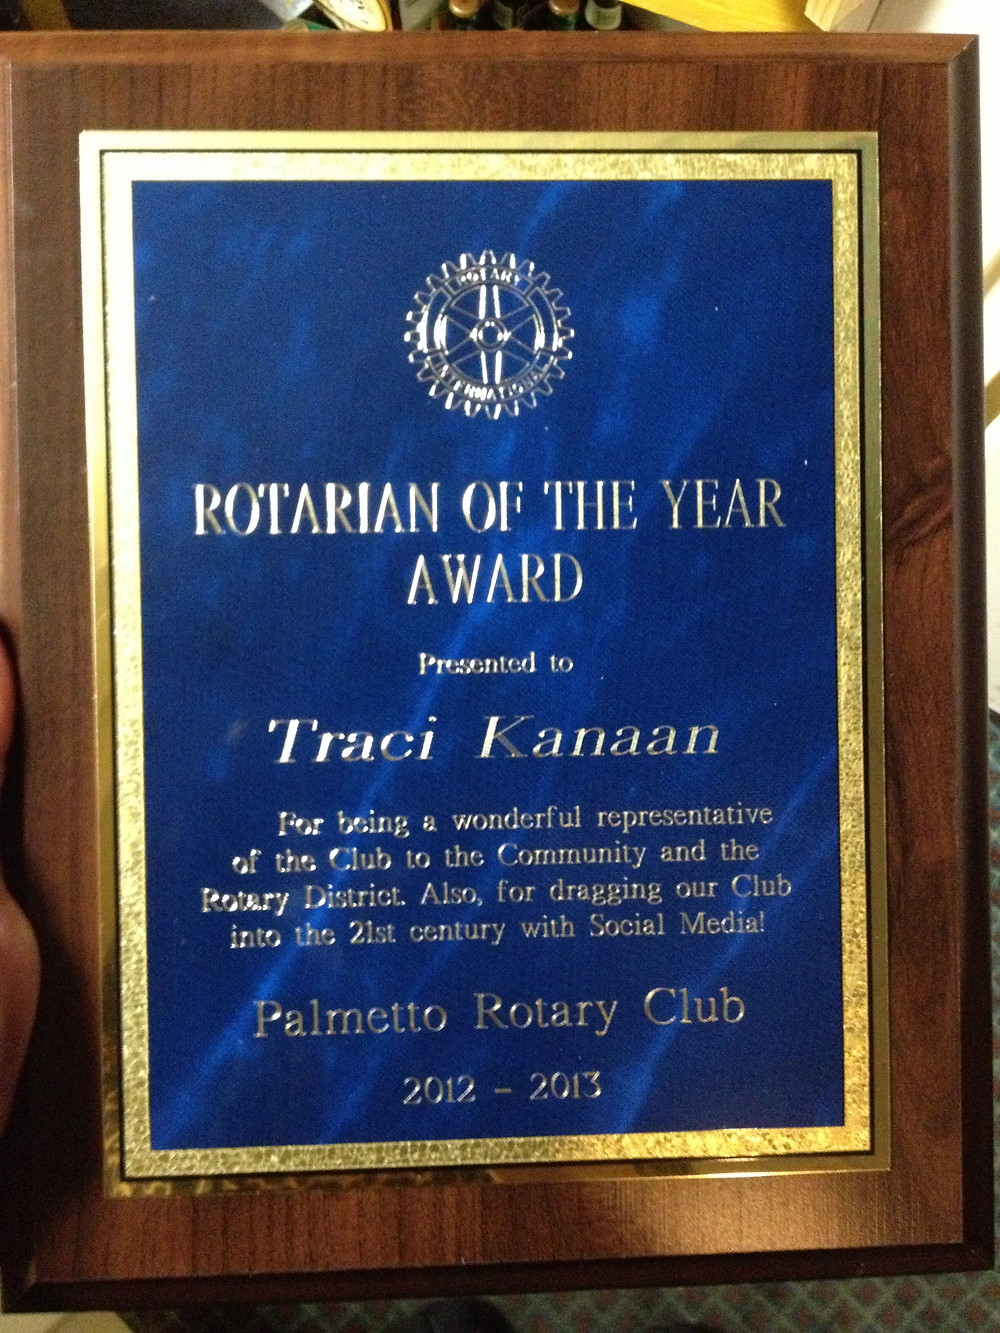 Palmetto Rotary, Rotarian of the Year Award